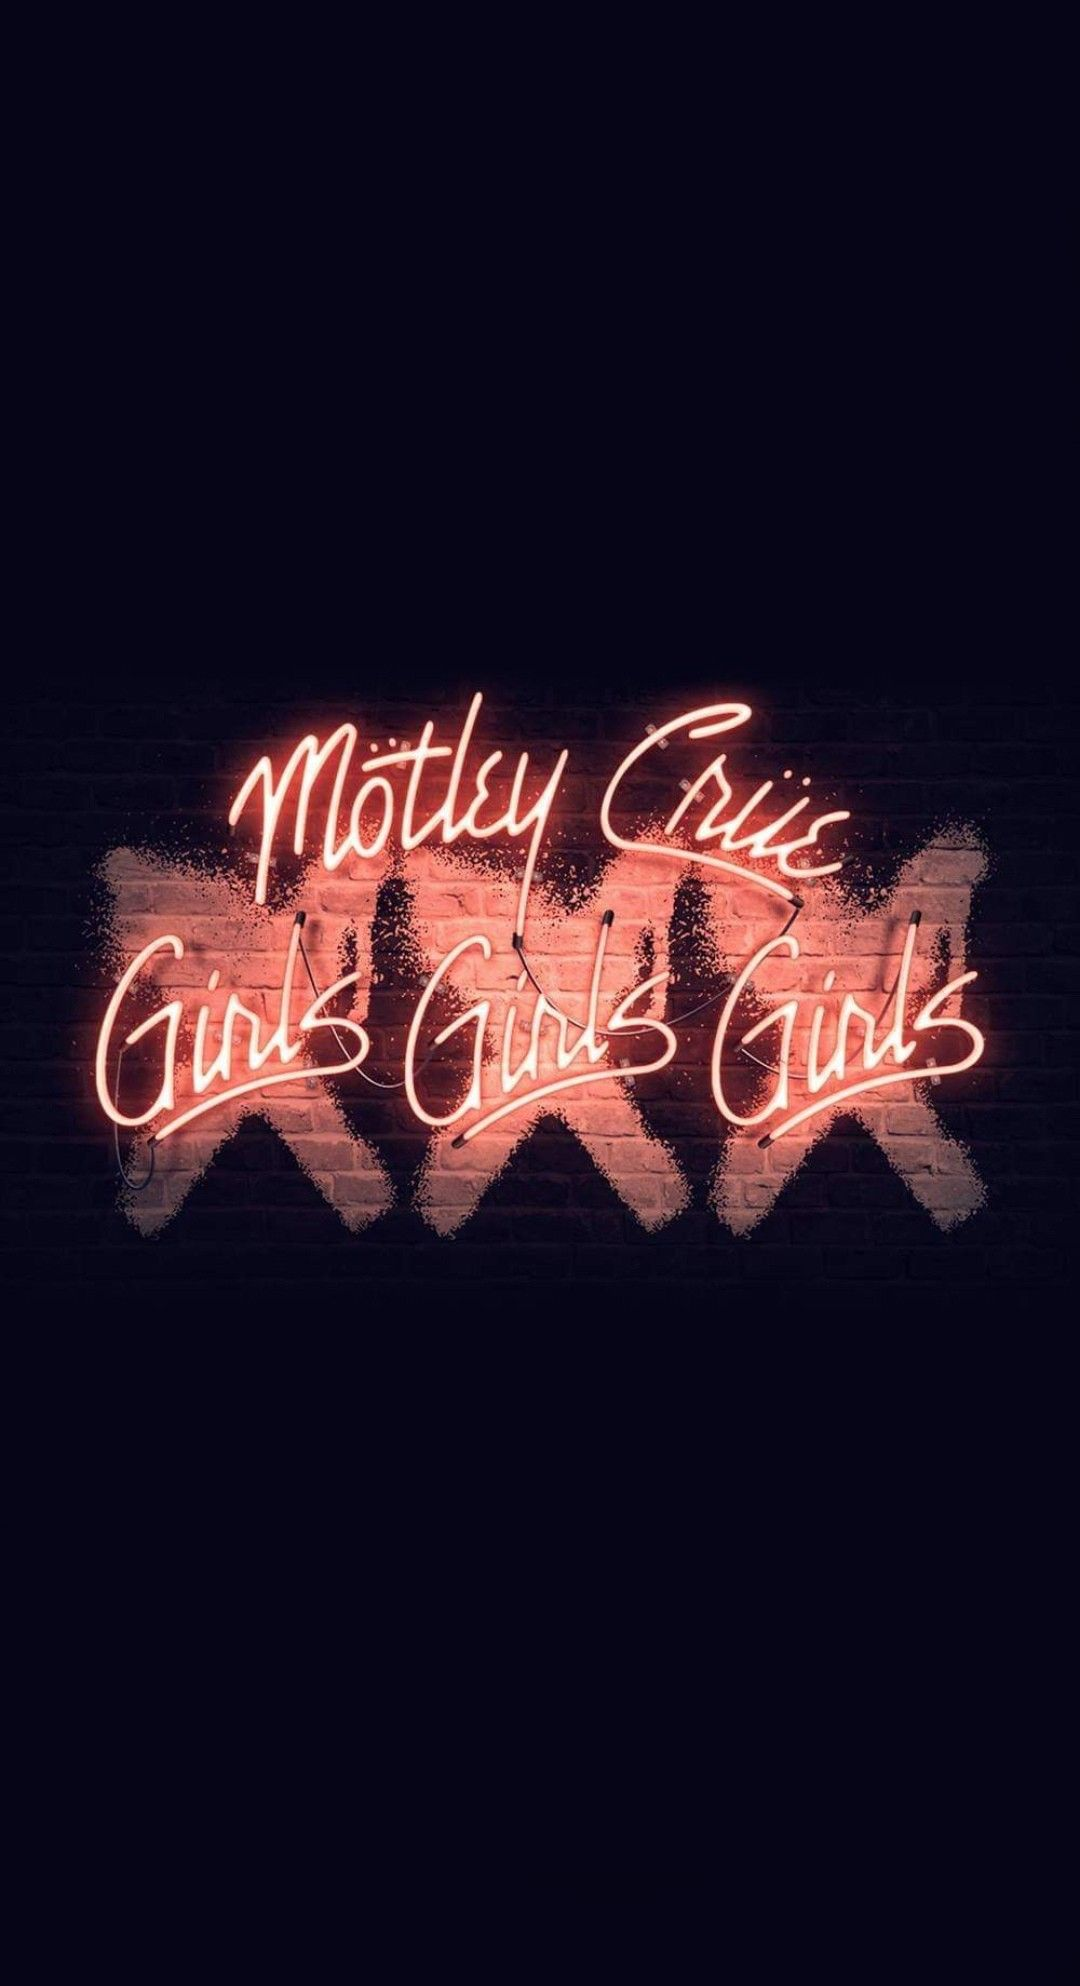 Idea By Lorena Martinez On Love Band Wallpapers Motley Crue Motley